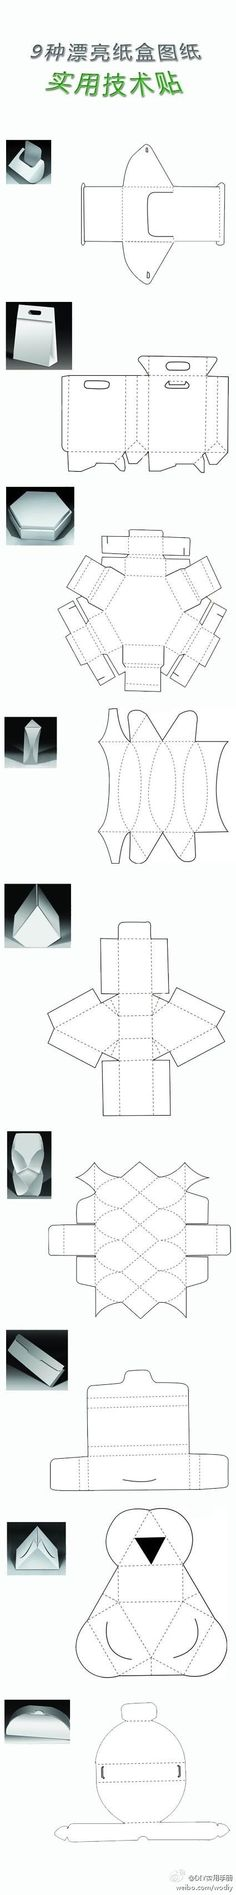 folding box ideas                  各种盒子